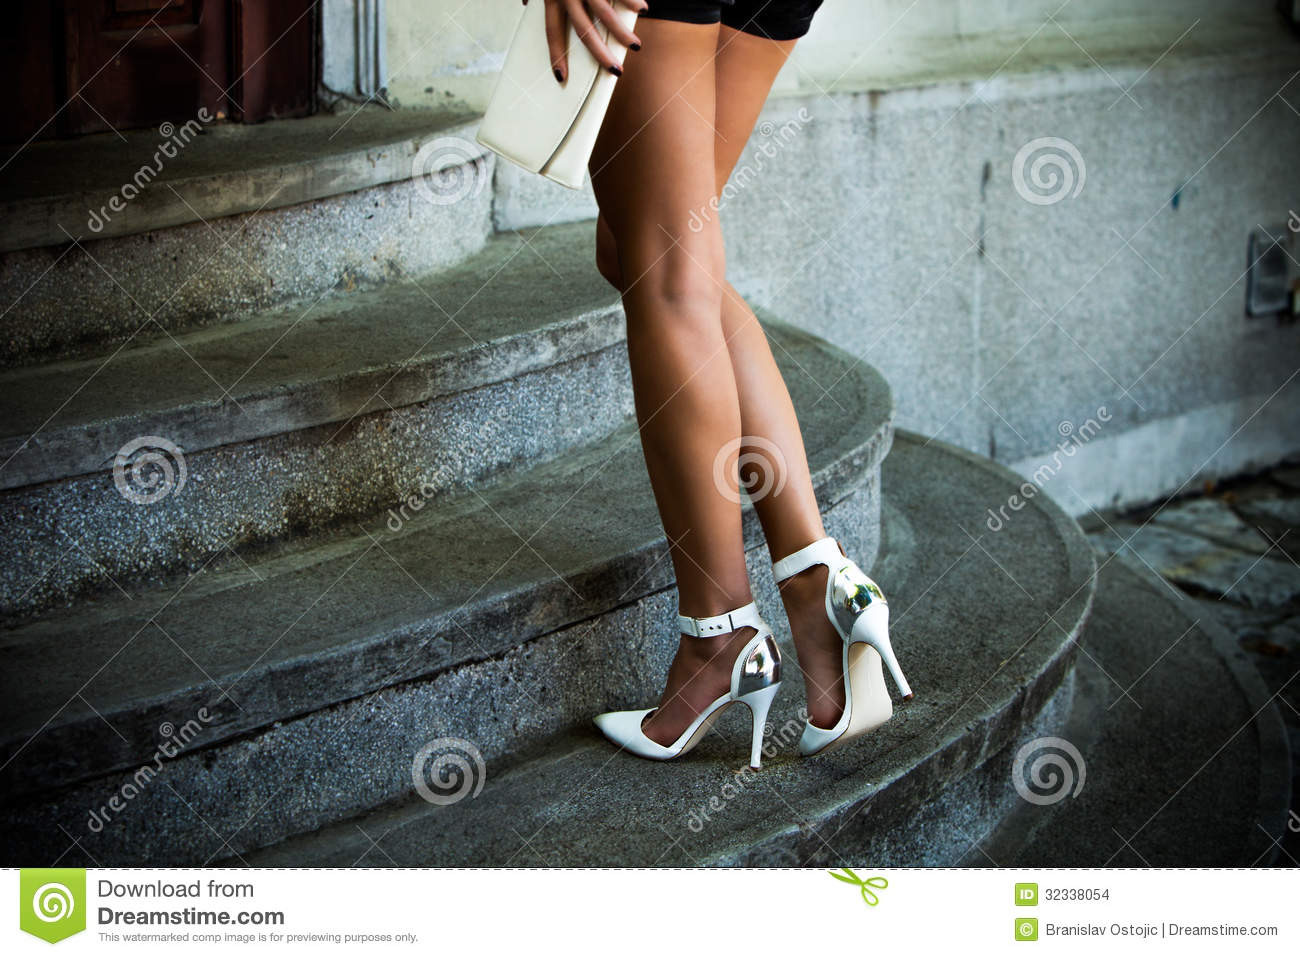 Woman legs on stairs in elegant white high heel shoes outdoor shot